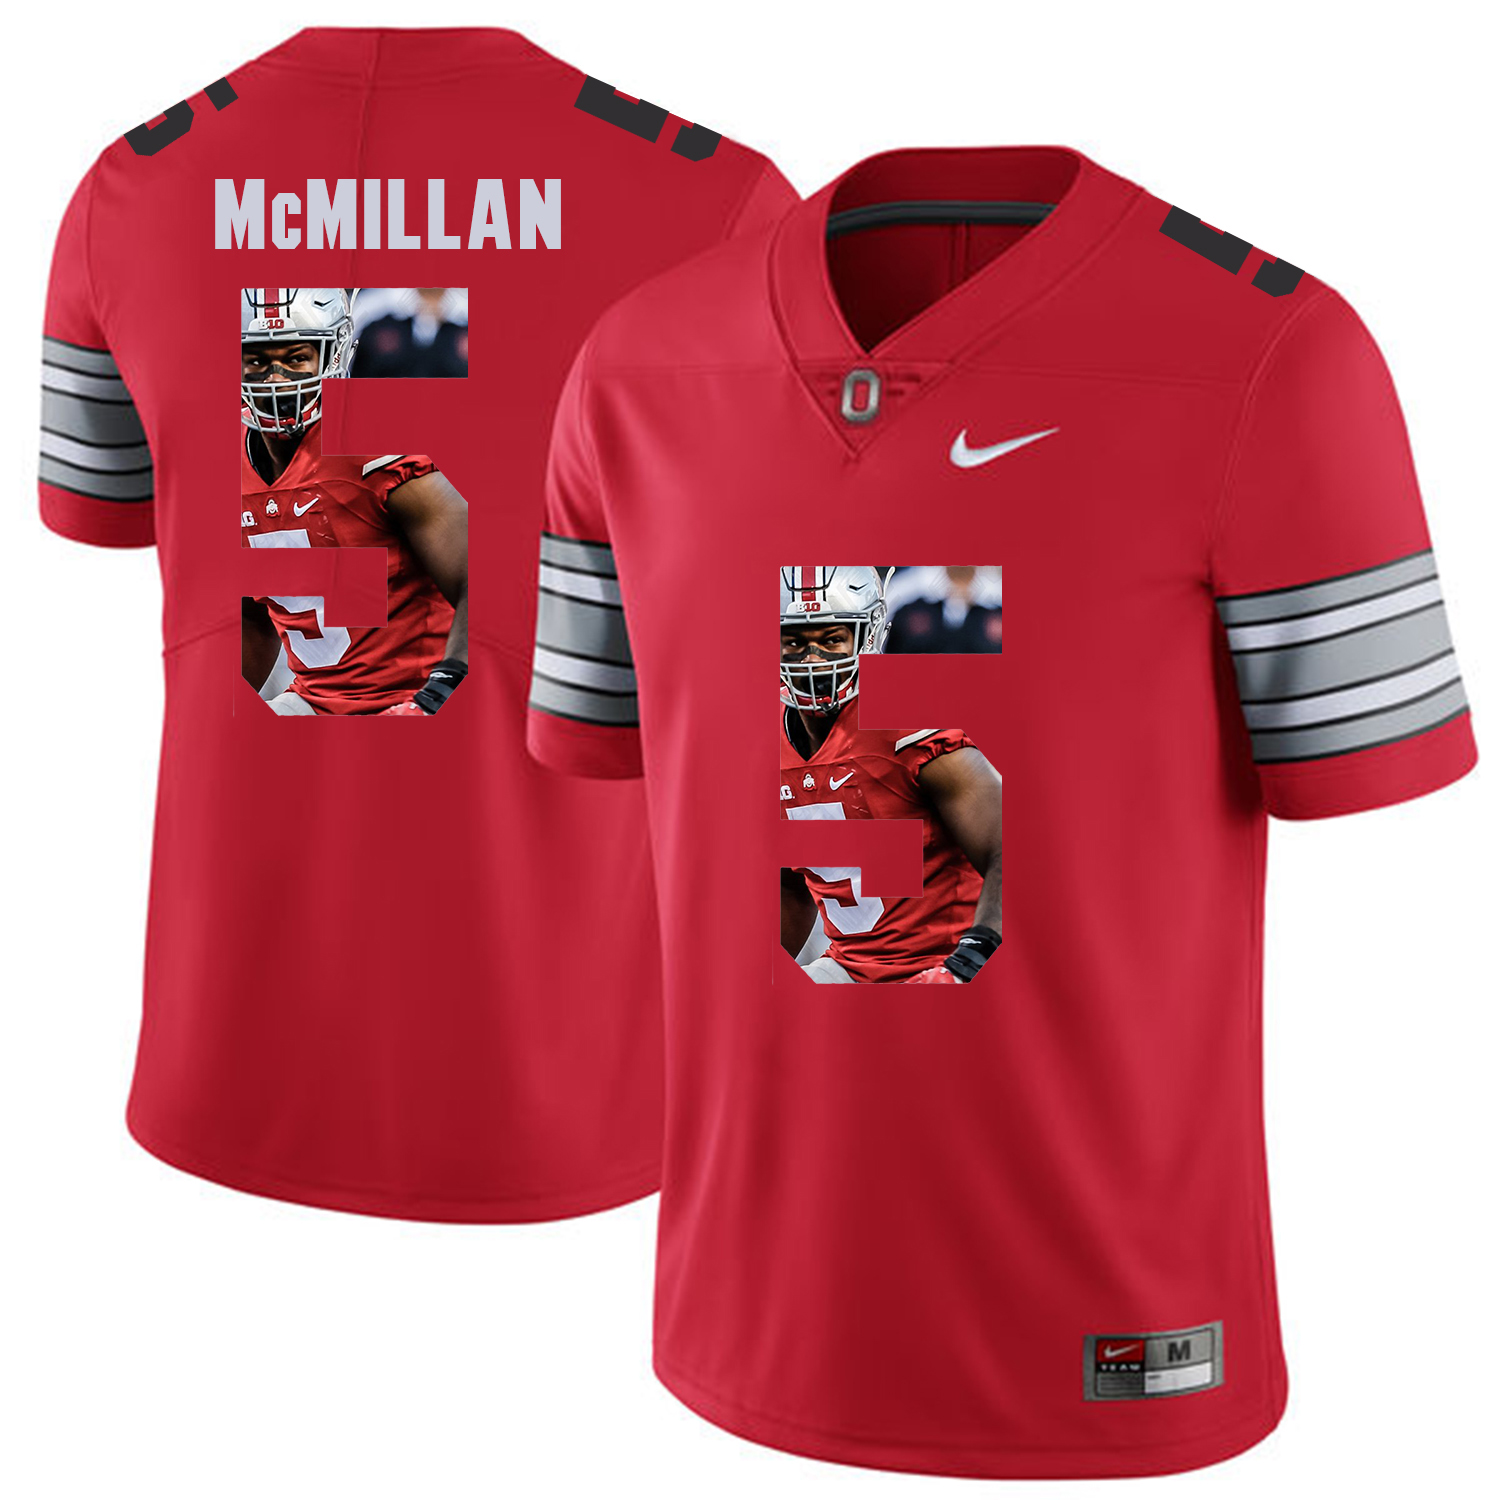 Men Ohio State 5 Mcmillan Red Fashion Edition Customized NCAA Jerseys